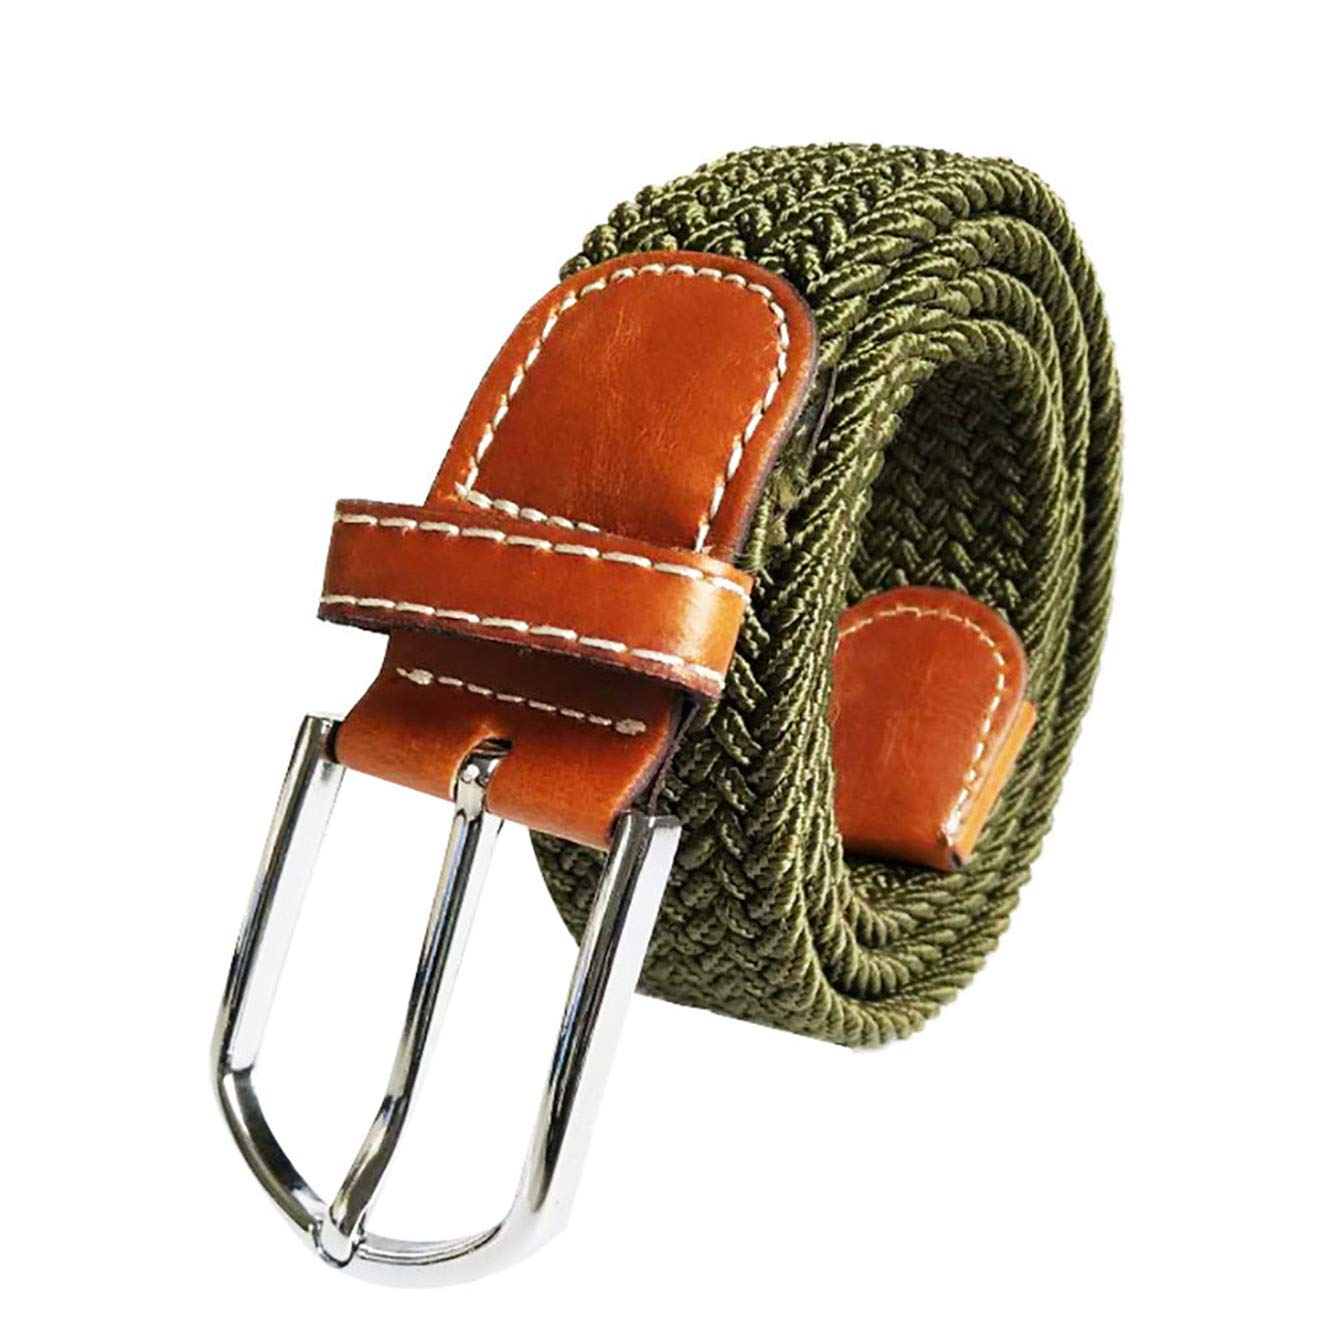 TIFENNY Fashion Woven Canvas Belt Adjustable Unisex Canvas Military Waist Combat Straps Tactical Outdoor Belt Army Green